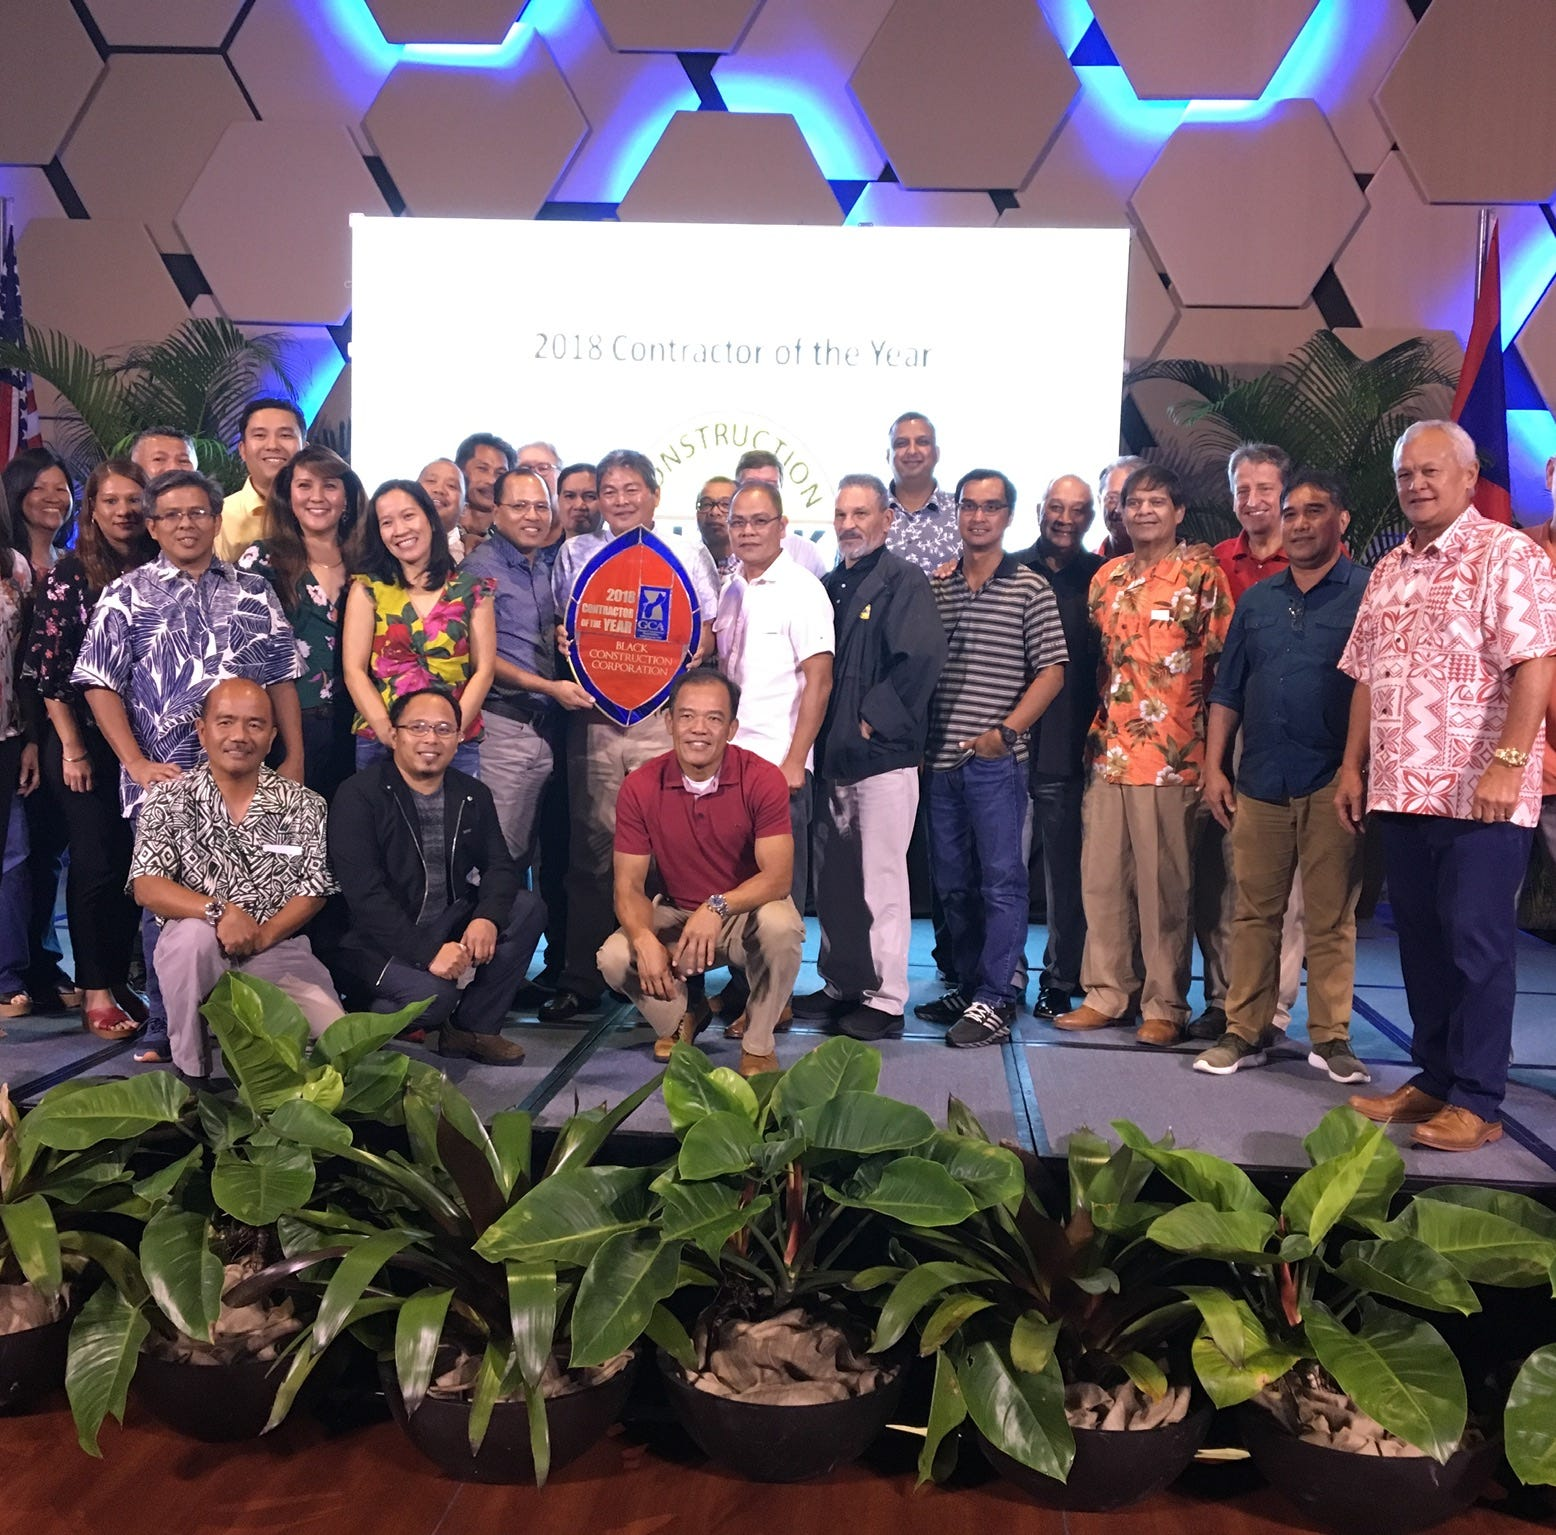 Black Construction Corporation sweeps Guam Contractors Association Awards